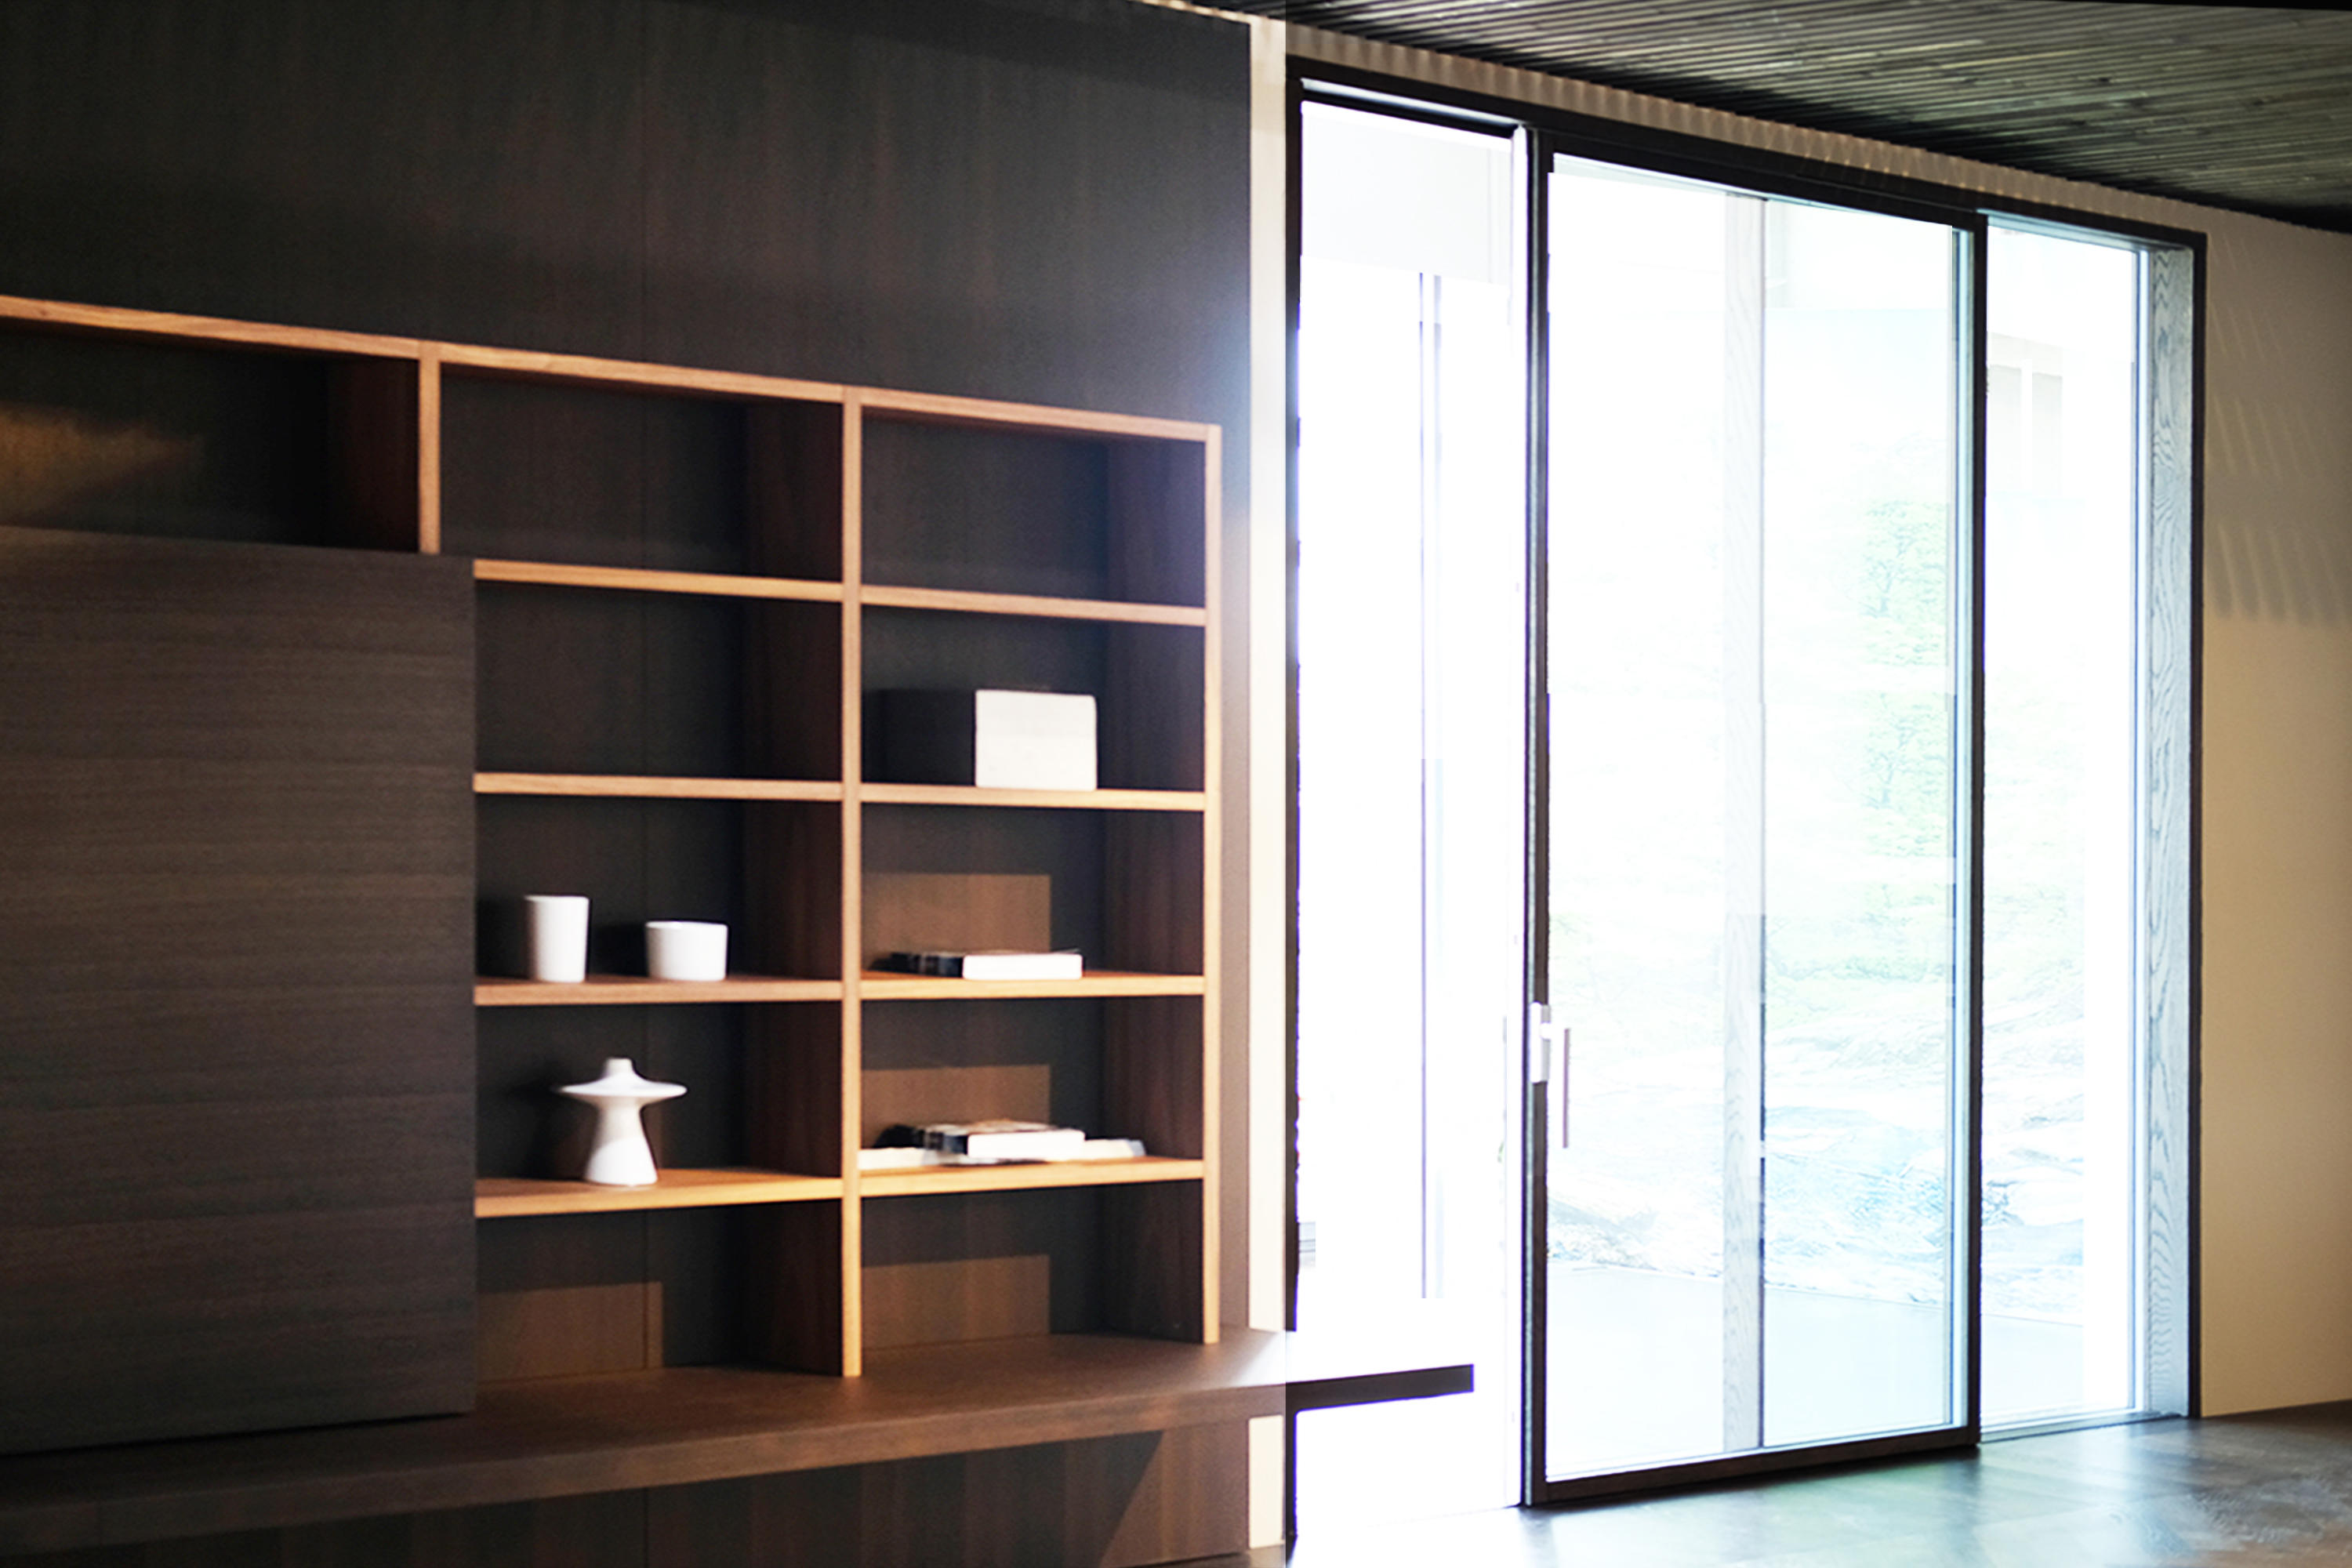 Ghost Wood minimal sliding door by ISAM | French doors ... : ghost door - pezcame.com